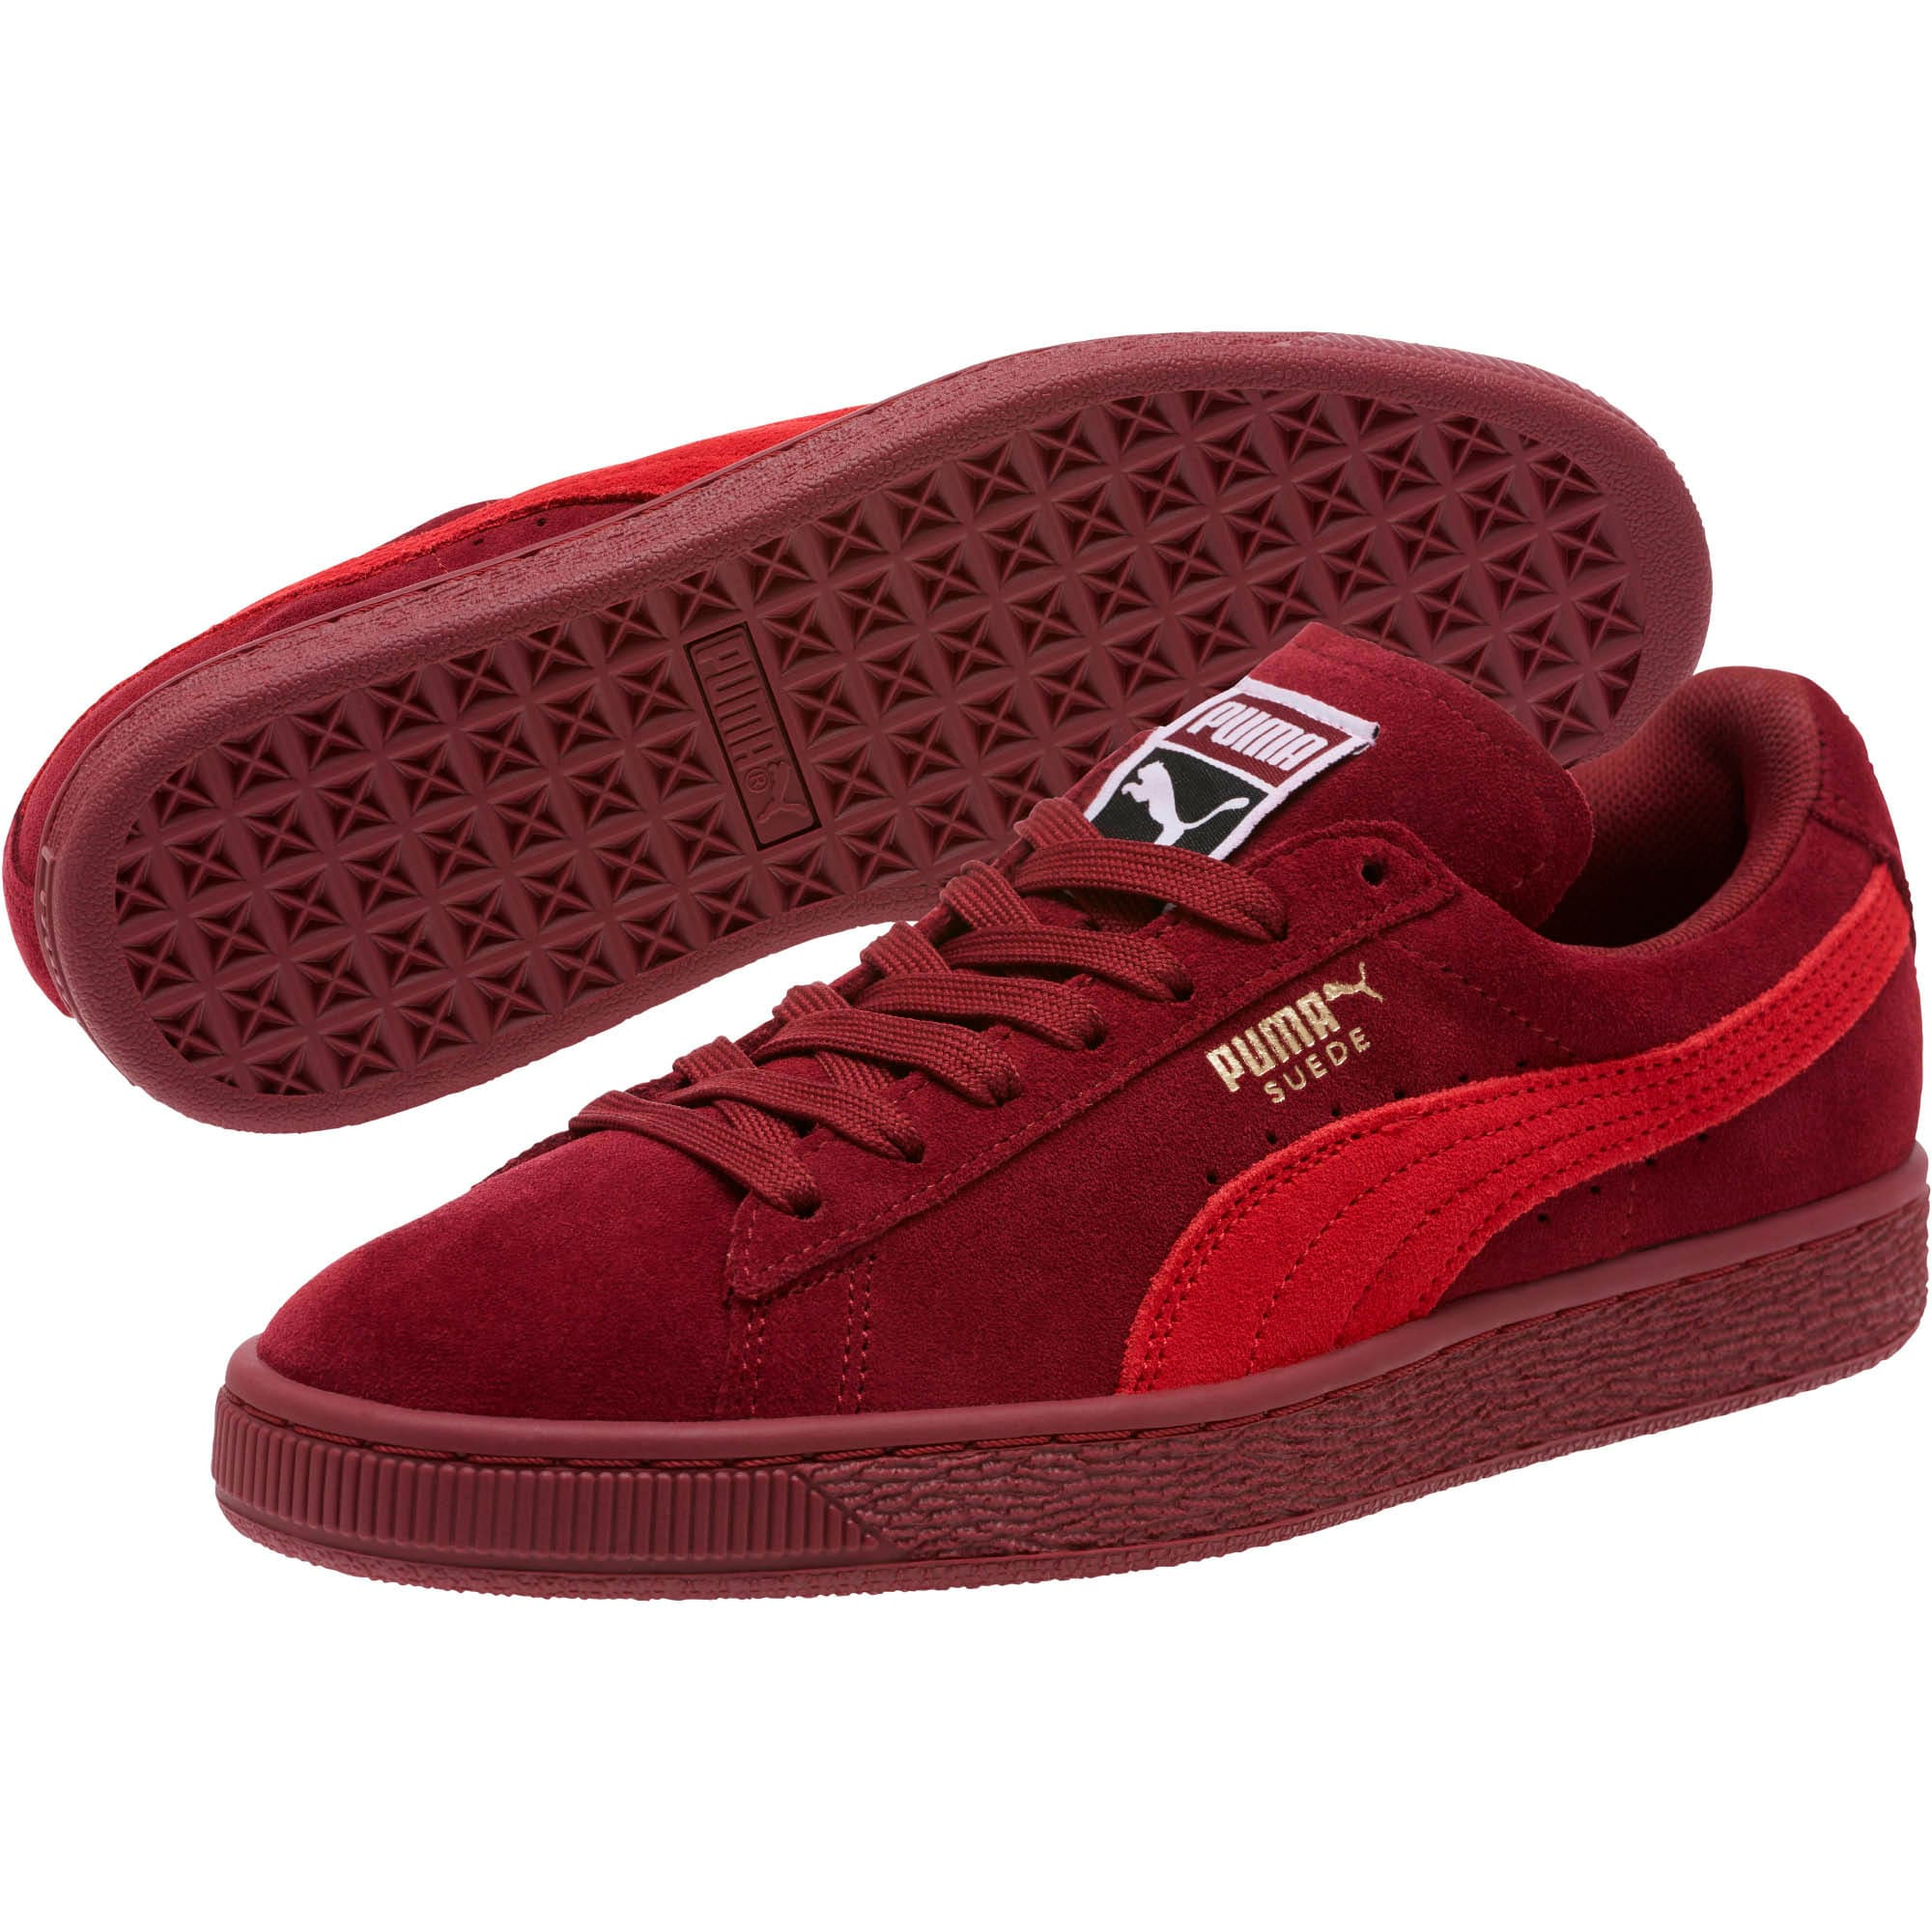 Thumbnail 2 of Suede Classic Women's Sneakers, Pomegranate-Ribbon Red, medium